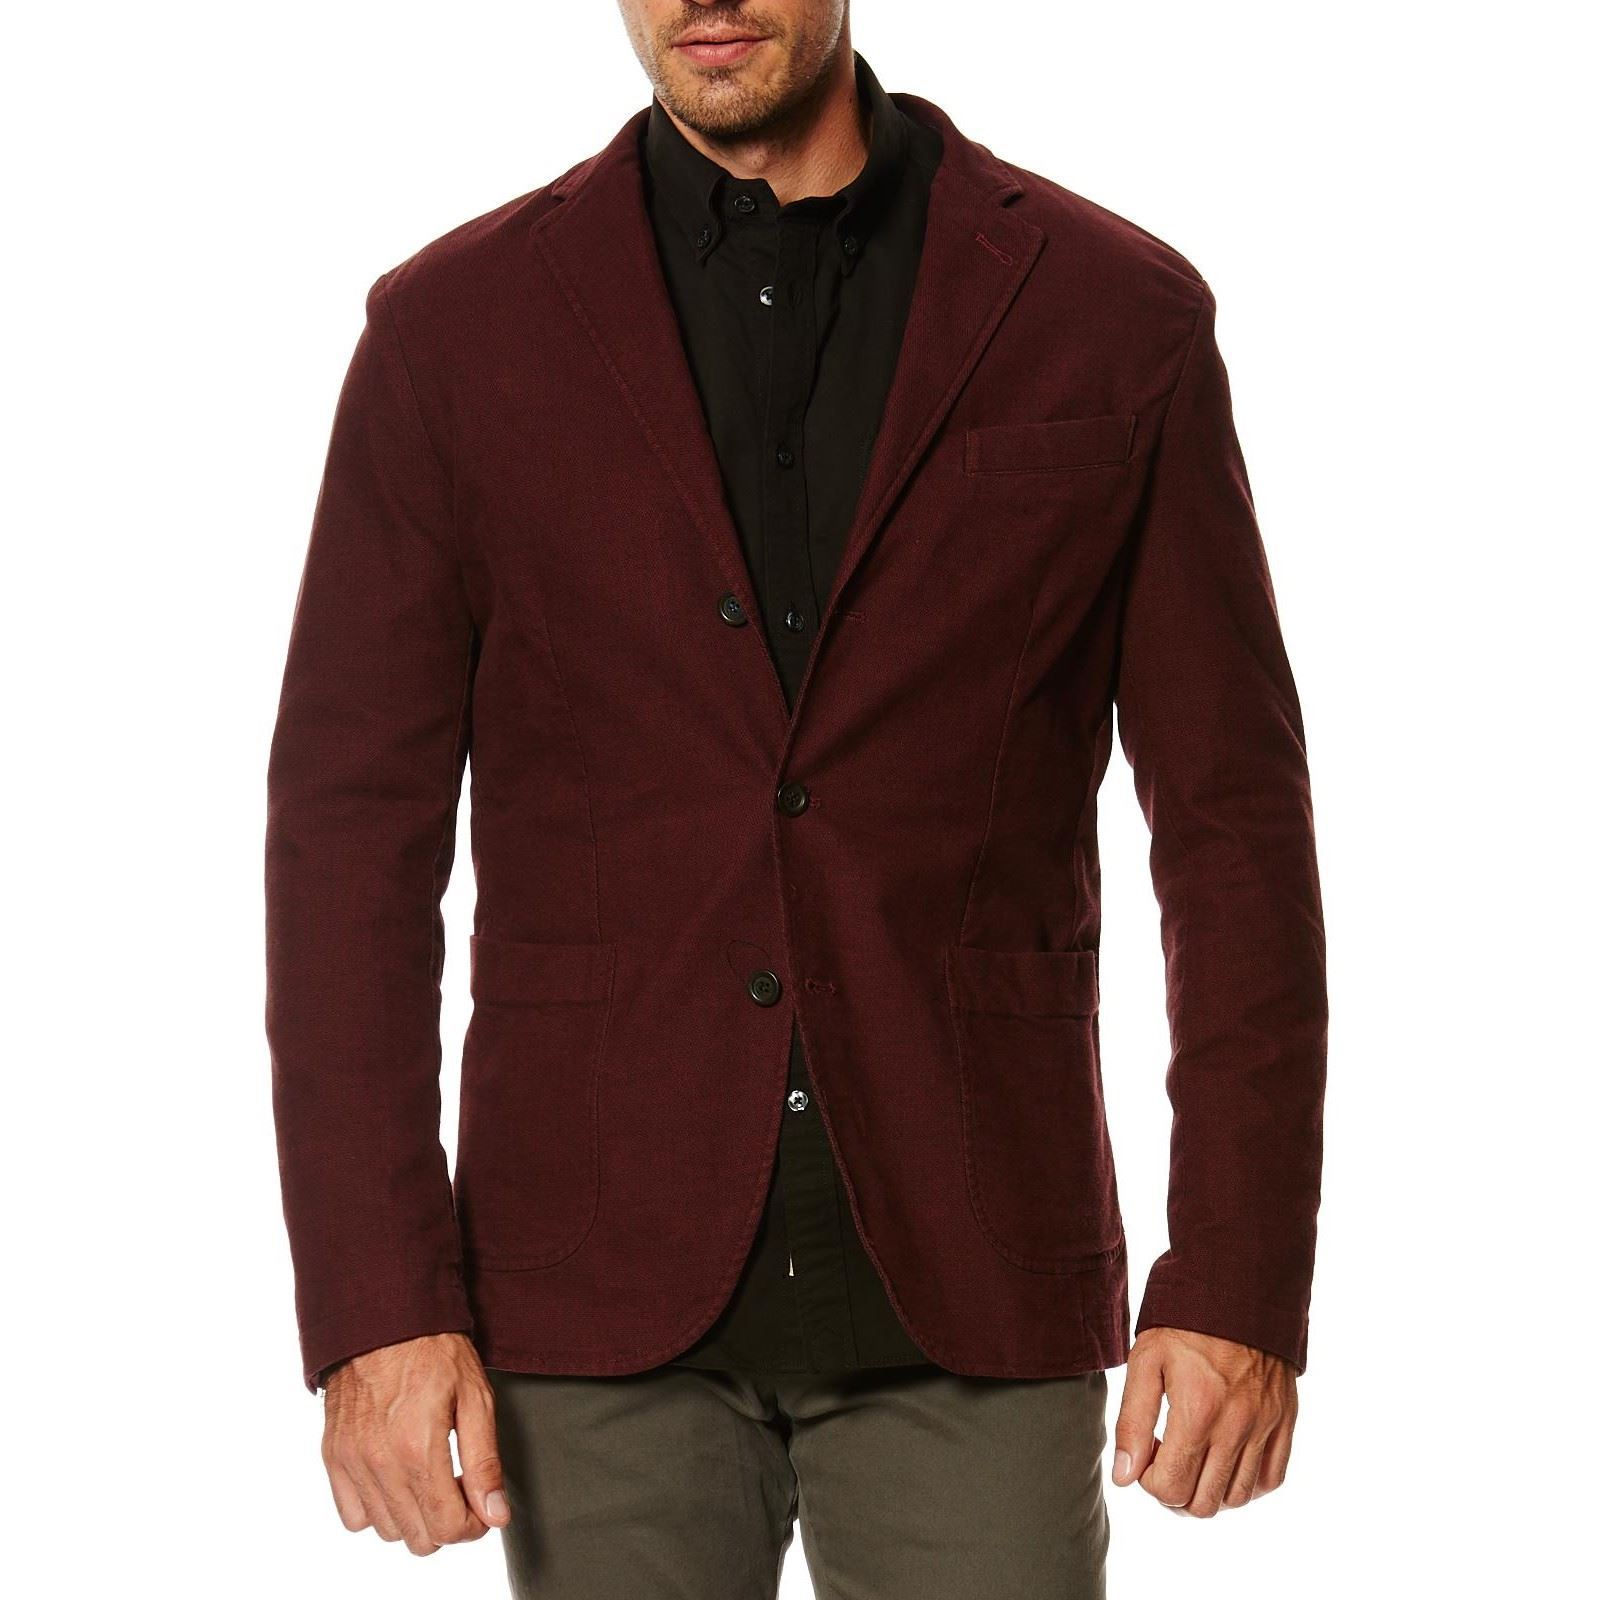 Find bordeaux blazer at ShopStyle. Shop the latest collection of bordeaux blazer from the most popular stores - all in one place.